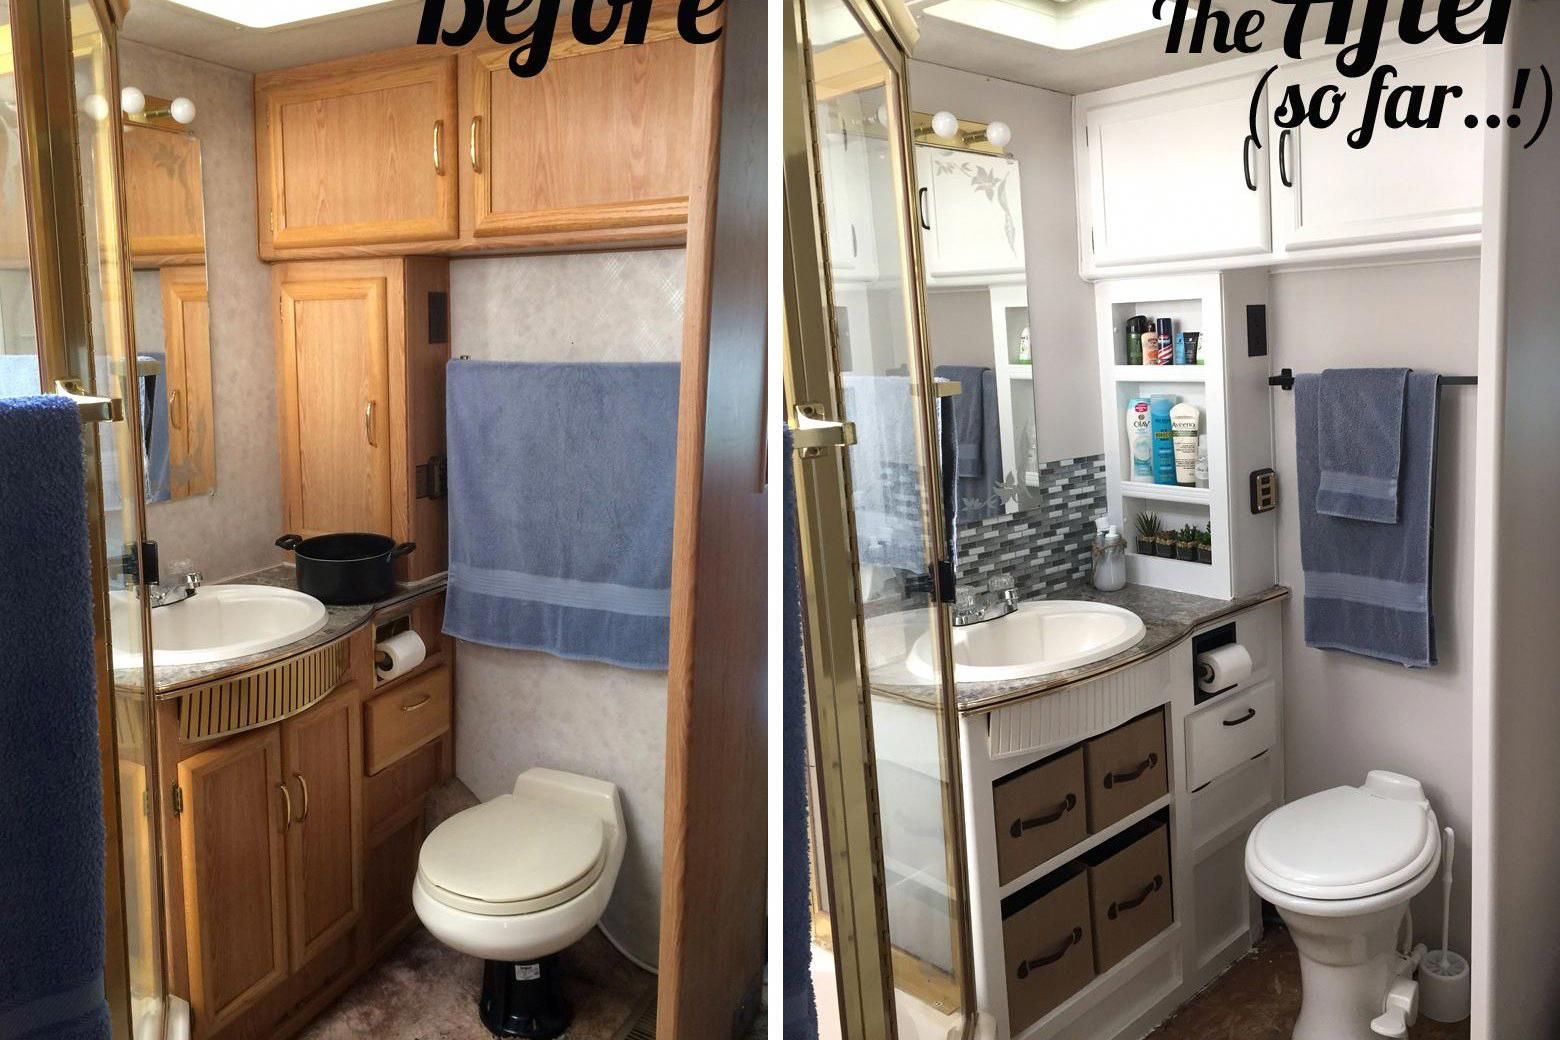 Bathroom Decorating Themes Bedroom Design Turquoise And Grey Bathroom Accessories 20181202 Camper Renovation Remodeled Campers Small Remodel